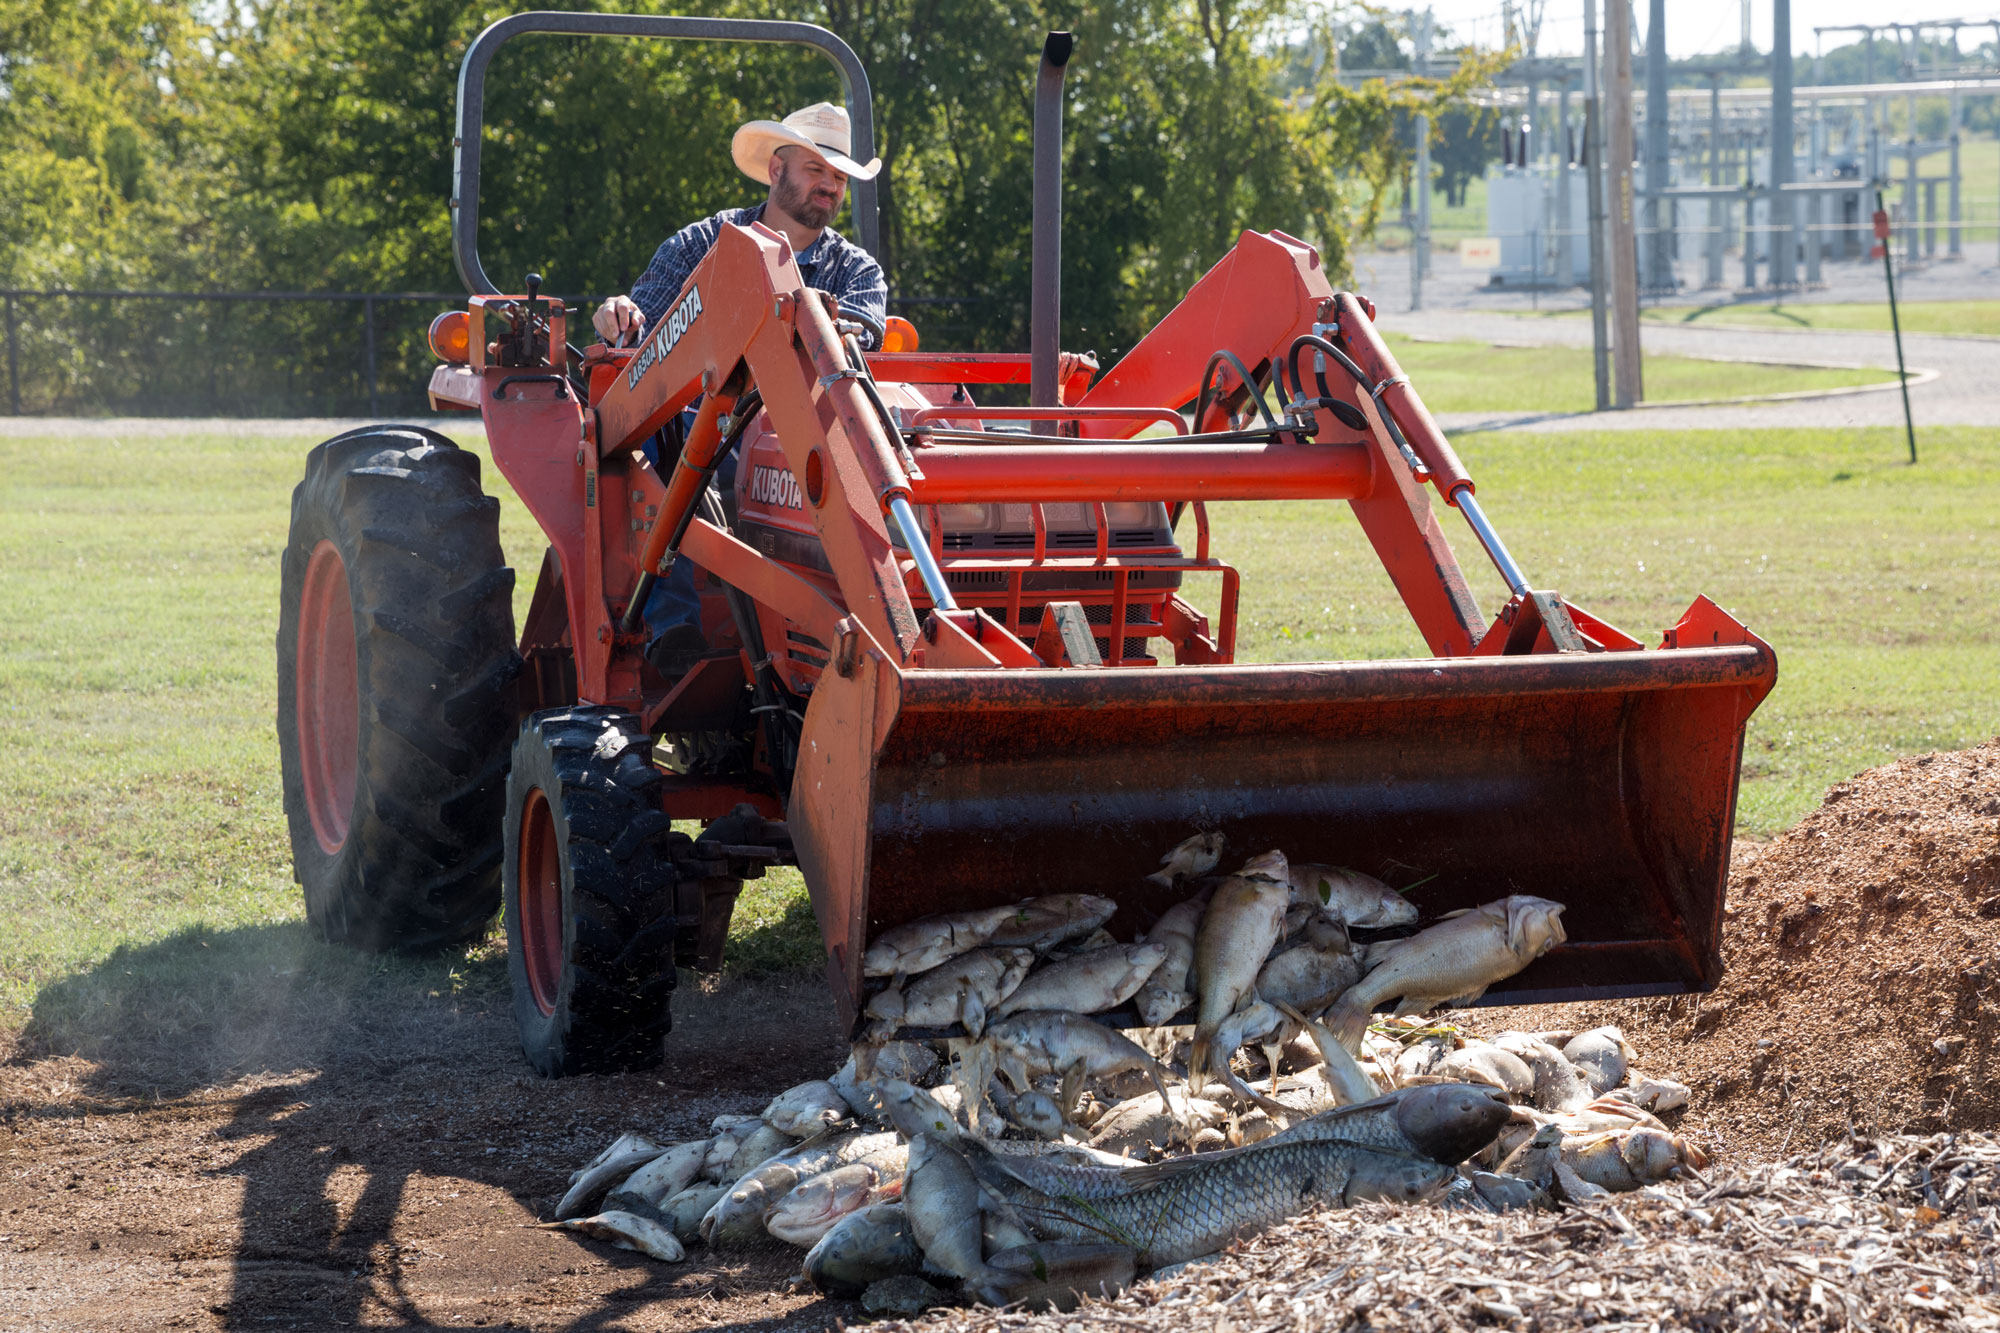 Tractor scooping up dead fish gathered from pond